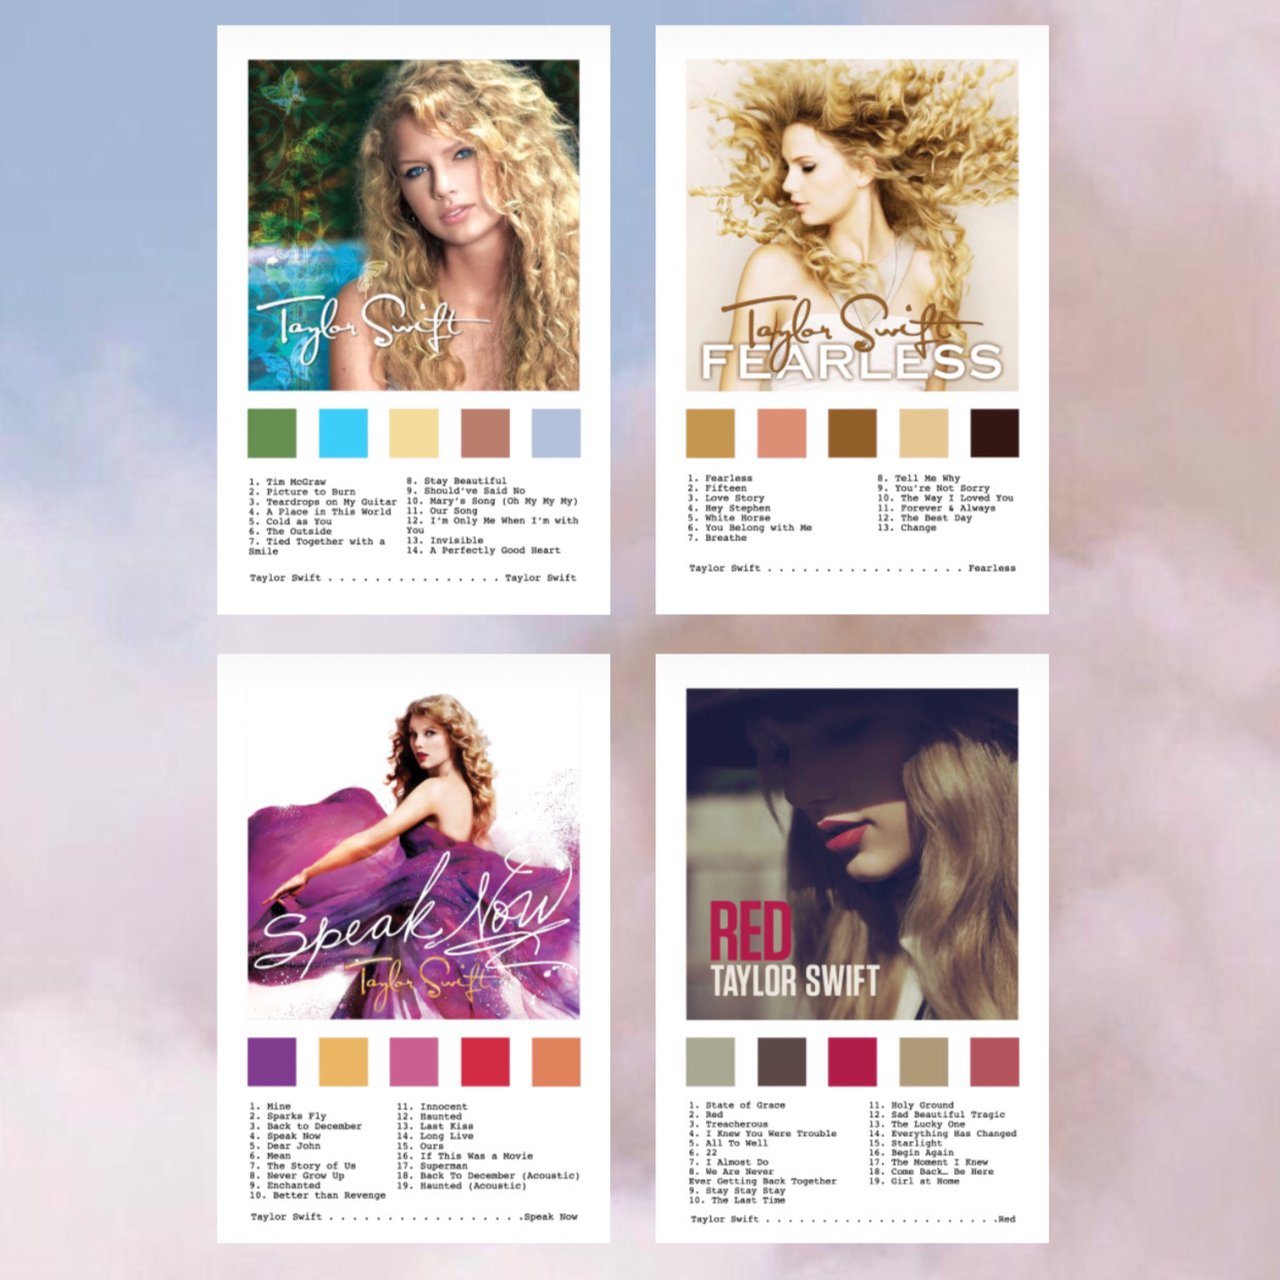 Taylor Swift Album Cover Prints Includes The Depop